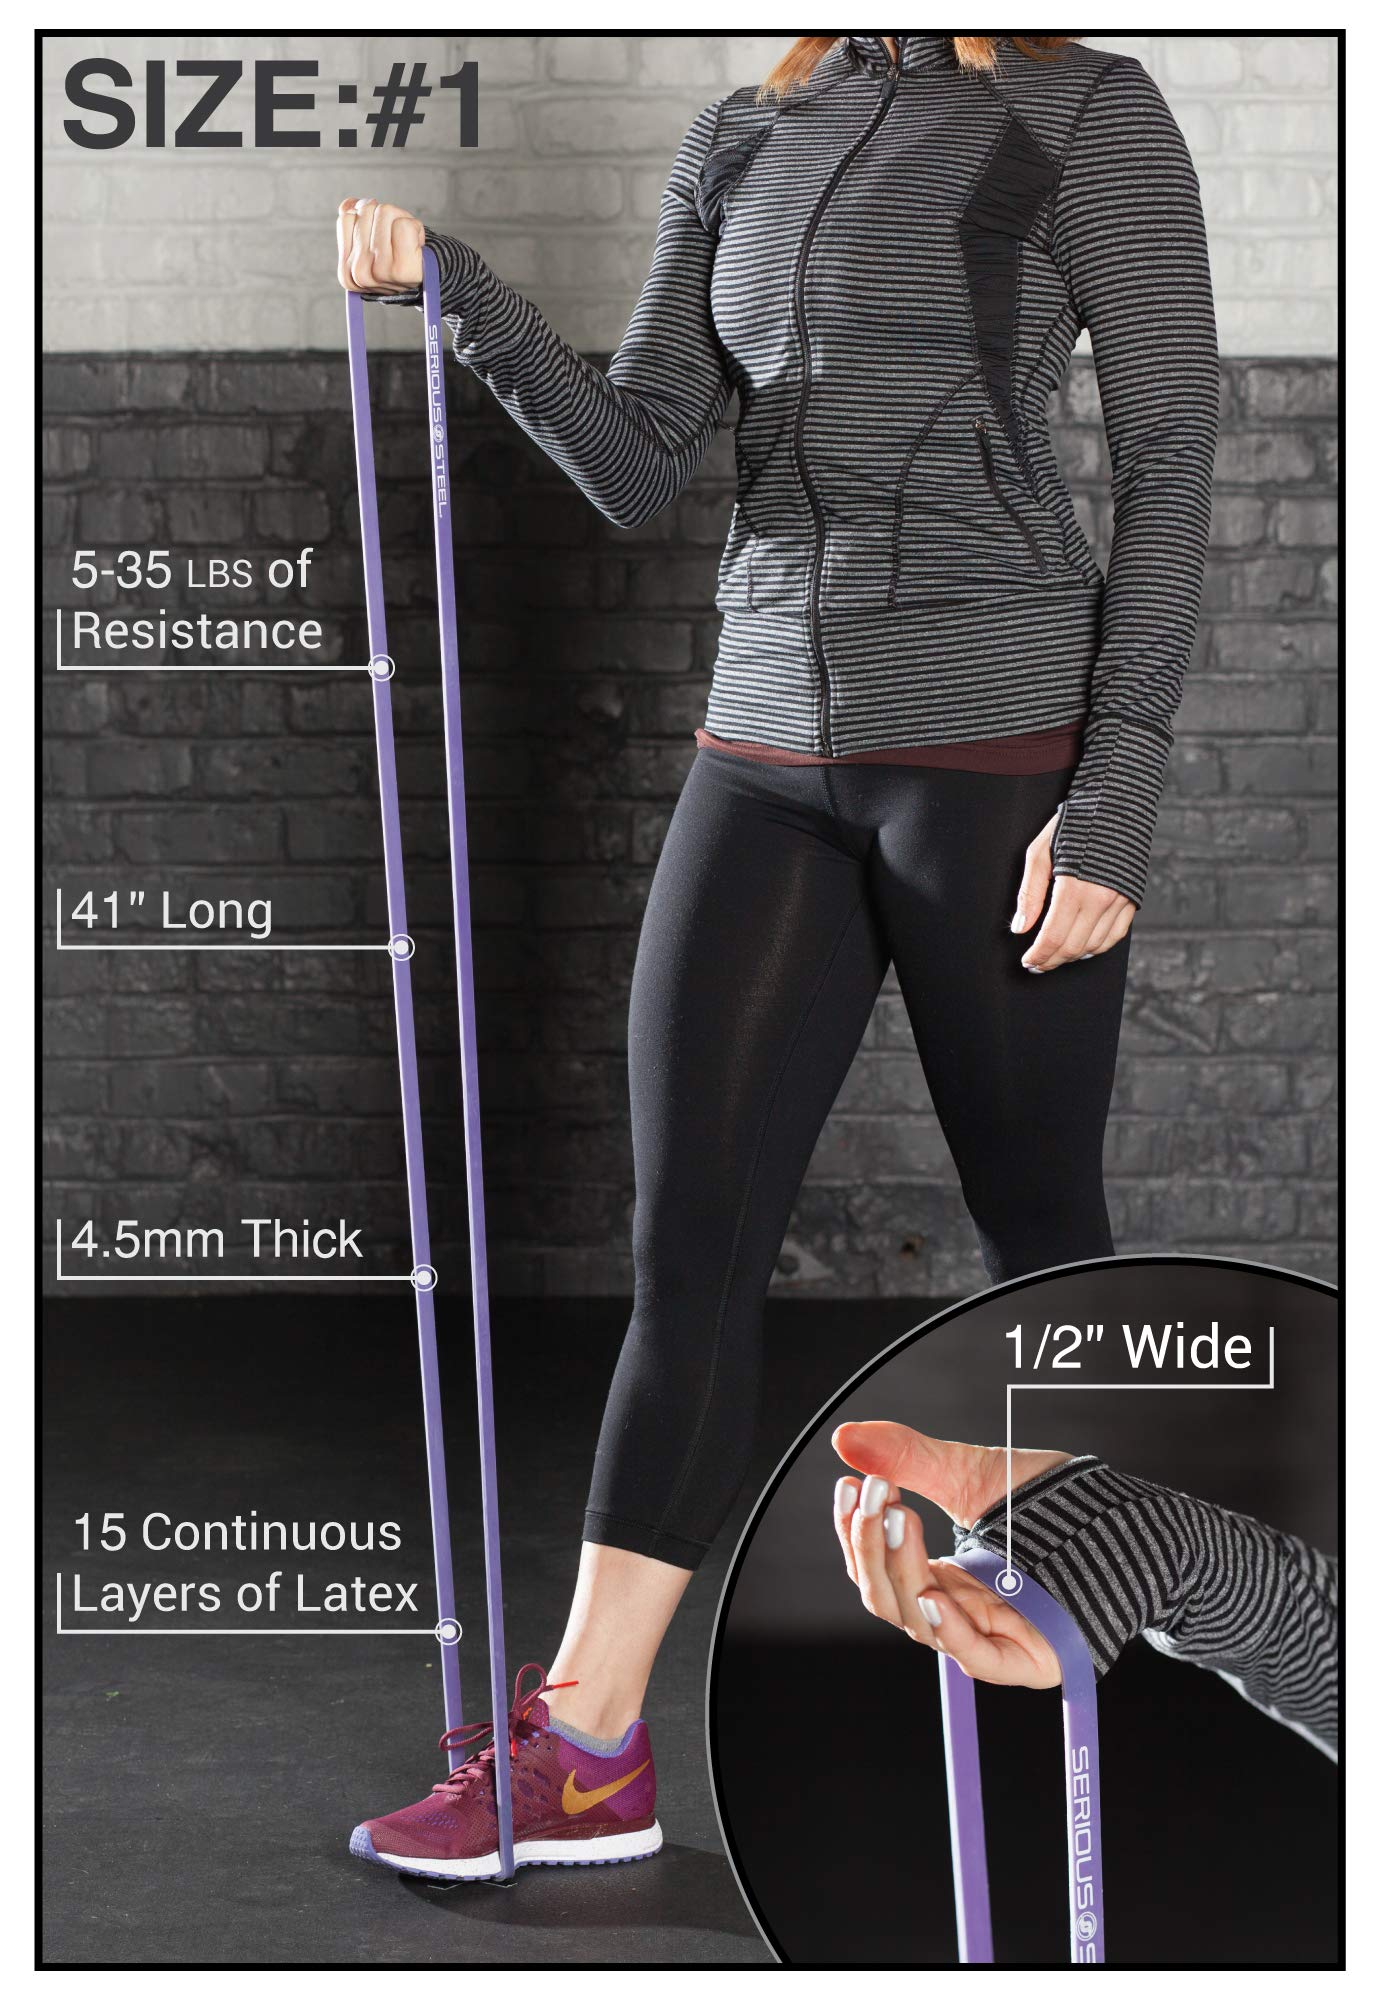 """Purple - #1 Pull-Up Band   Assisted Pull-up Loop Band   Resistance & Stretch Band Size: 1/2"""" x 4.5mm Resistance: 5-35lbs by Serious Steel Fitness (Image #3)"""